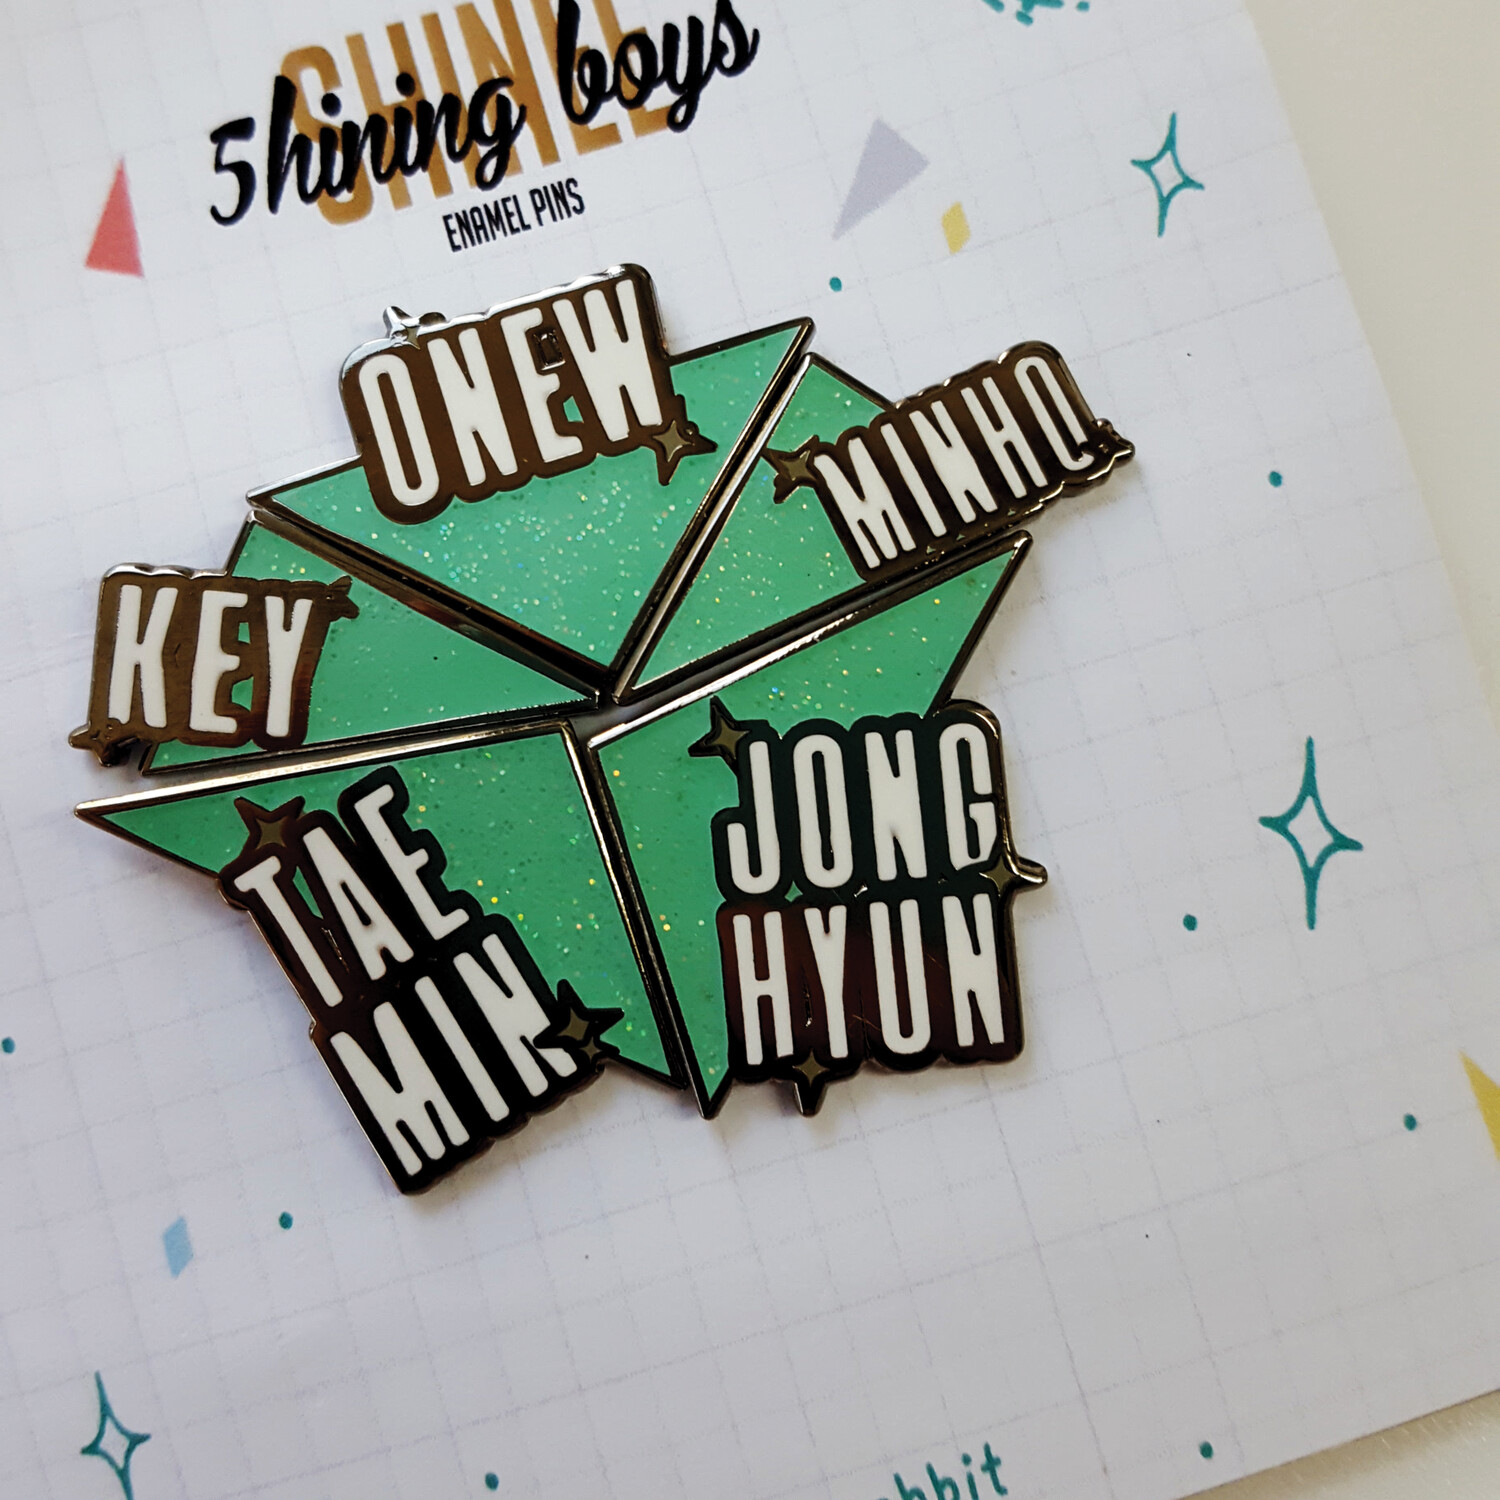 Enamel Pin: 5hining Boys